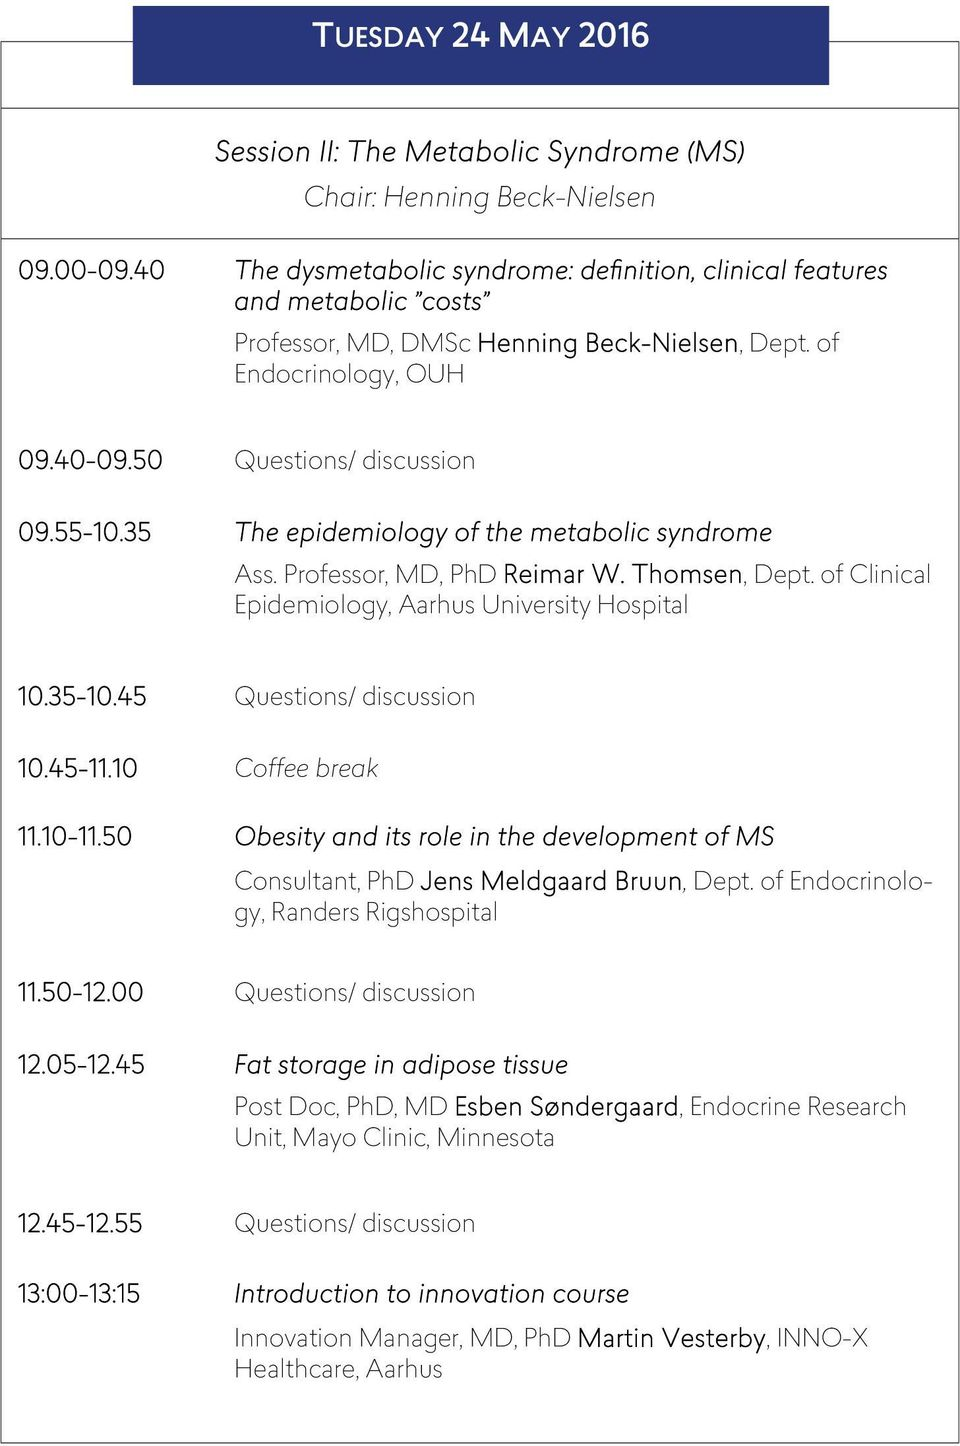 35 The epidemiology of the metabolic syndrome Ass. Professor, MD, PhD Reimar W. Thomsen, Dept. of Clinical Epidemiology, Aarhus University Hospital 10.35-10.45 Questions/ discussion 10.45-11.